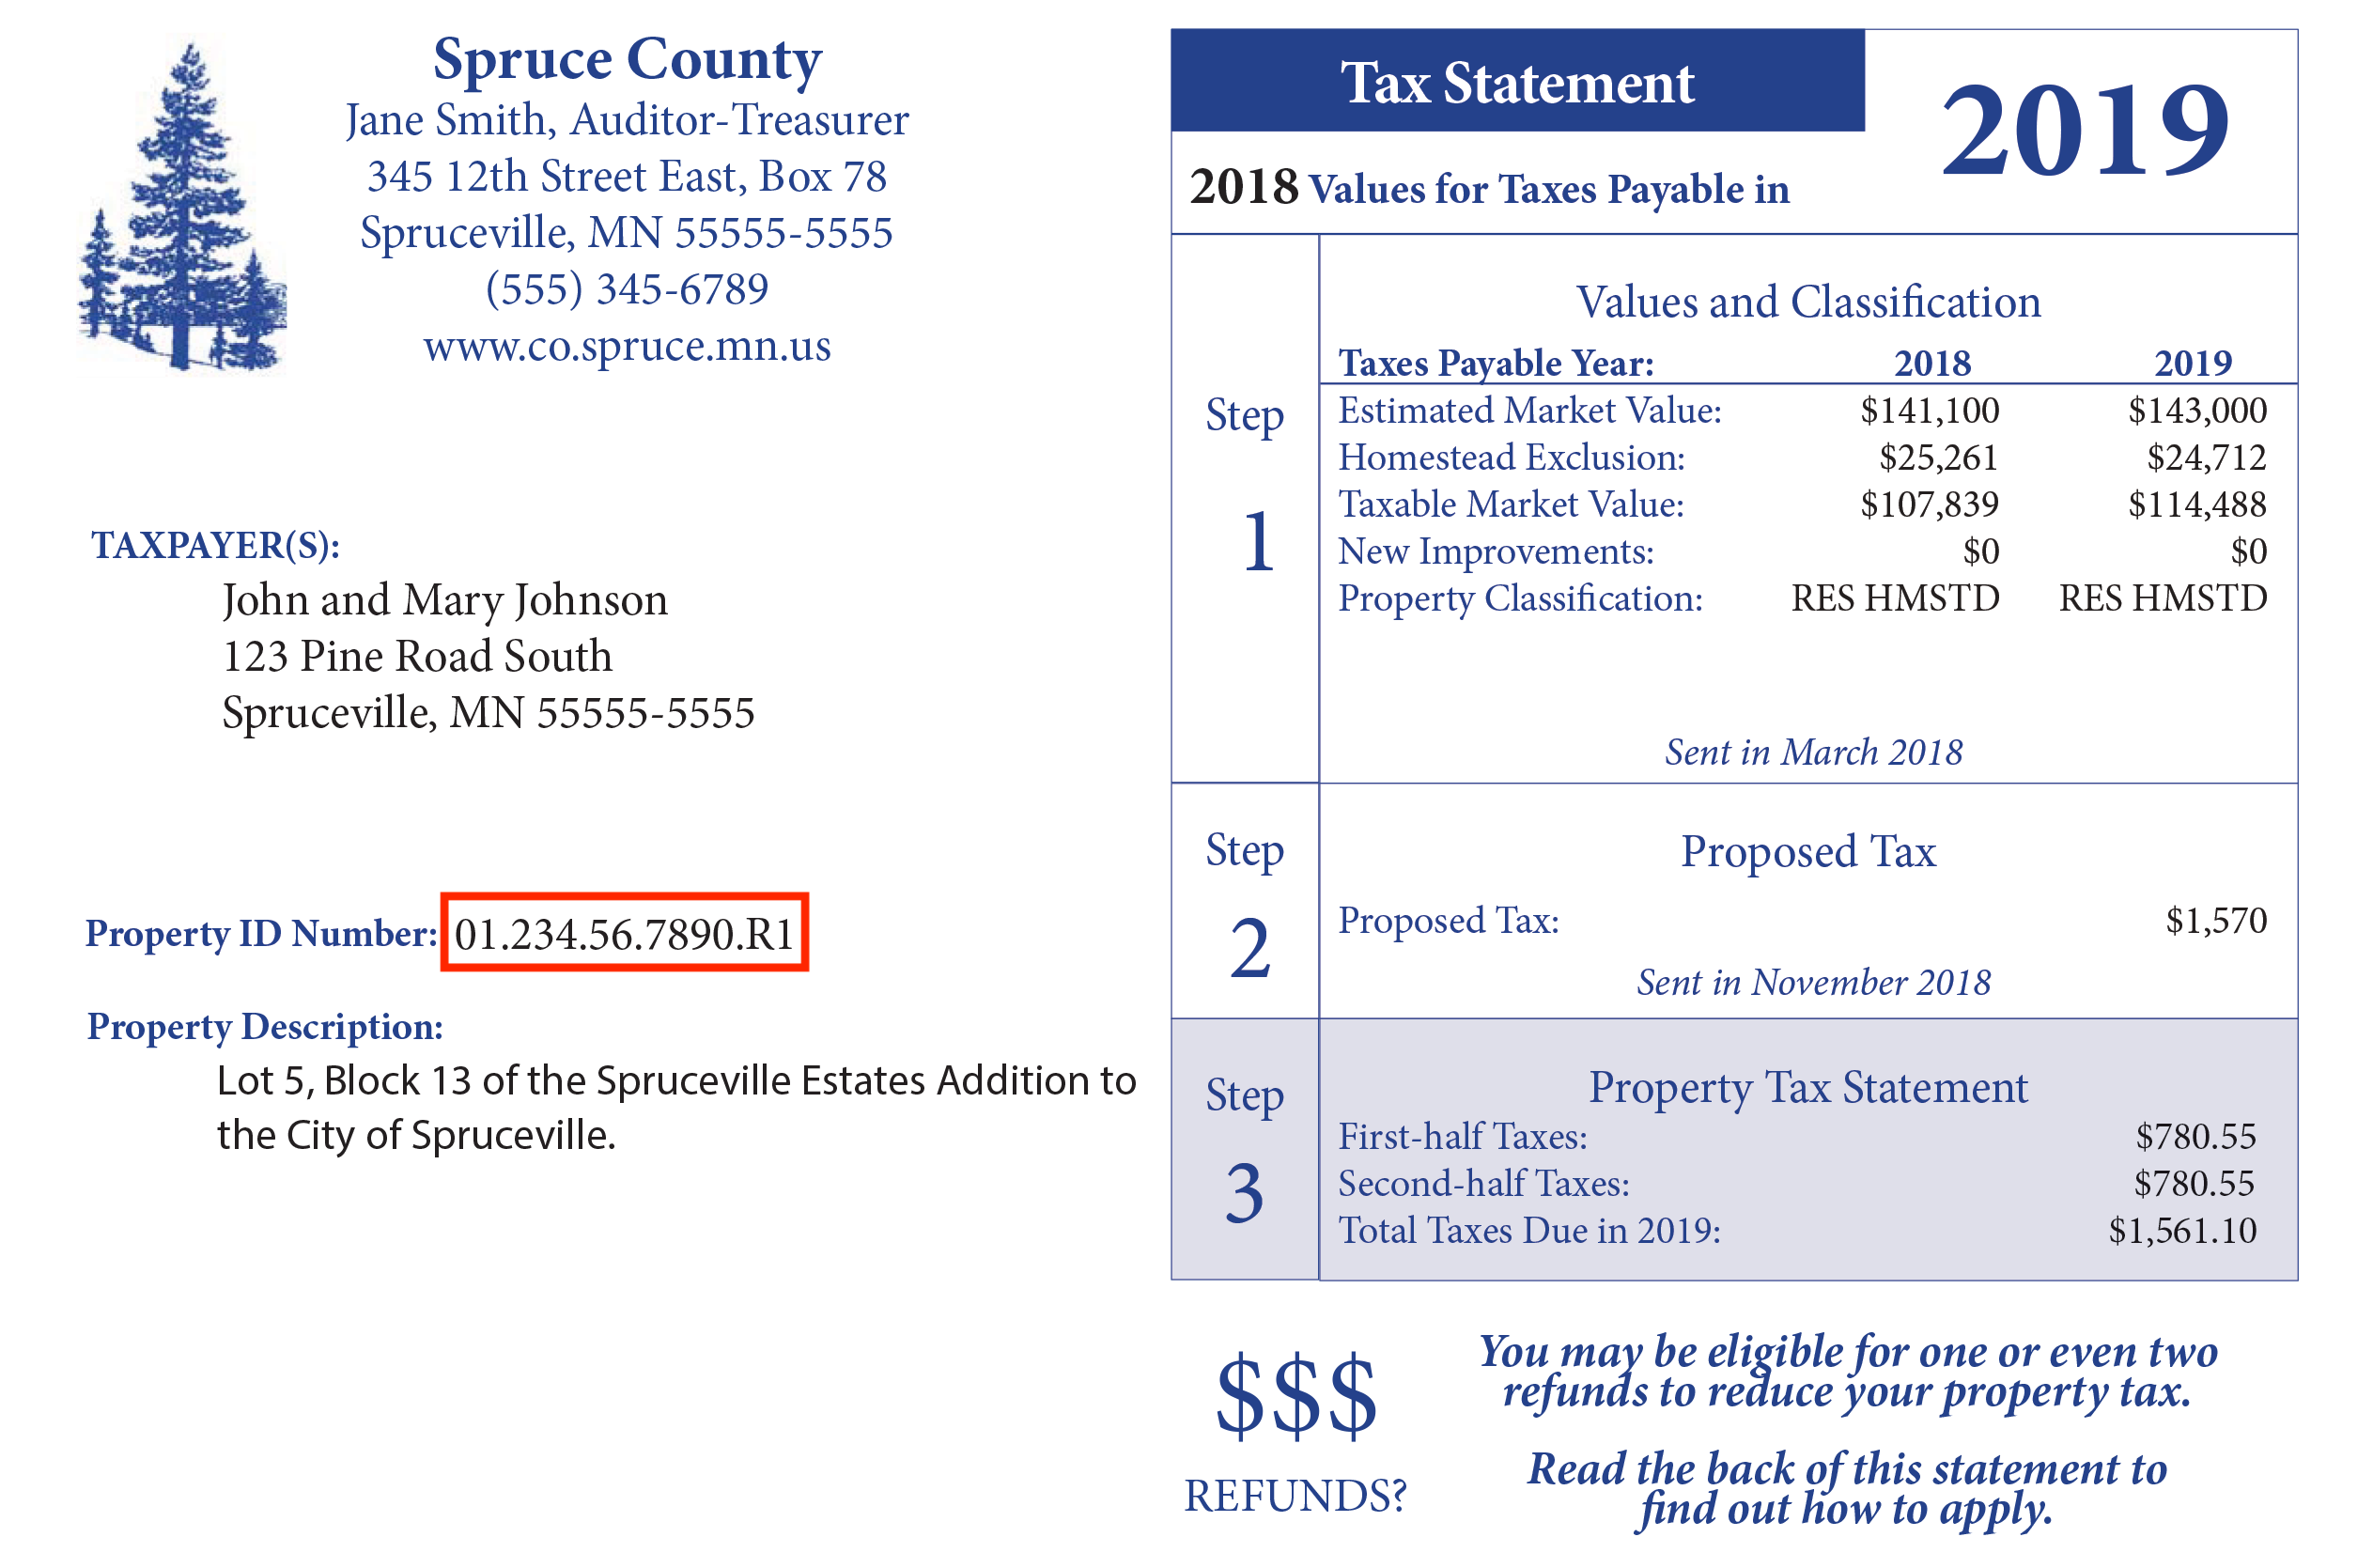 Example of Department of Revenue Property Tax Statement